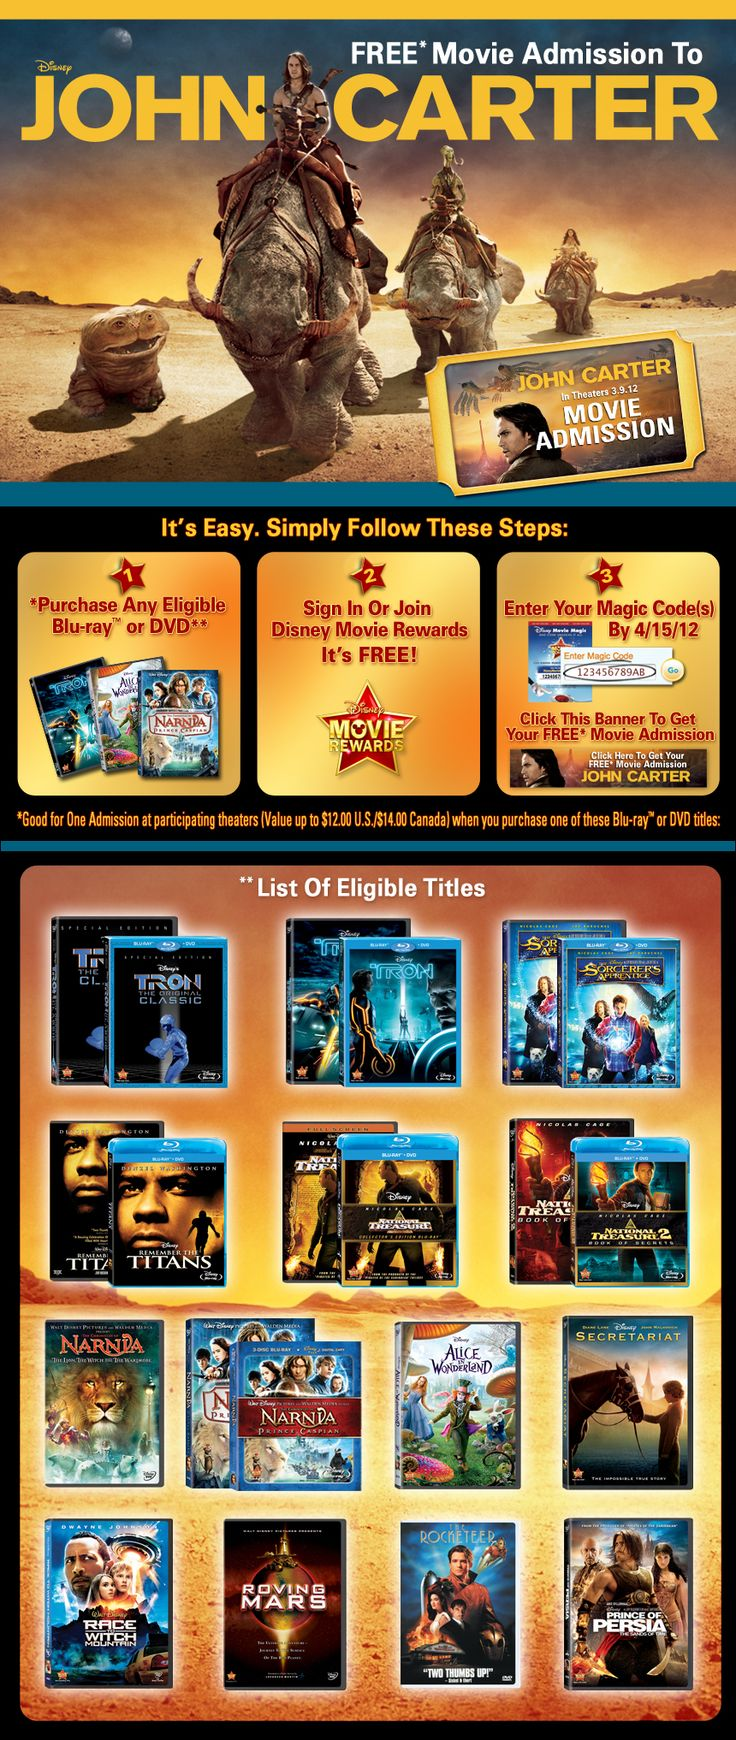 Free ticket to John Carter when you enter your movie code from select titles.